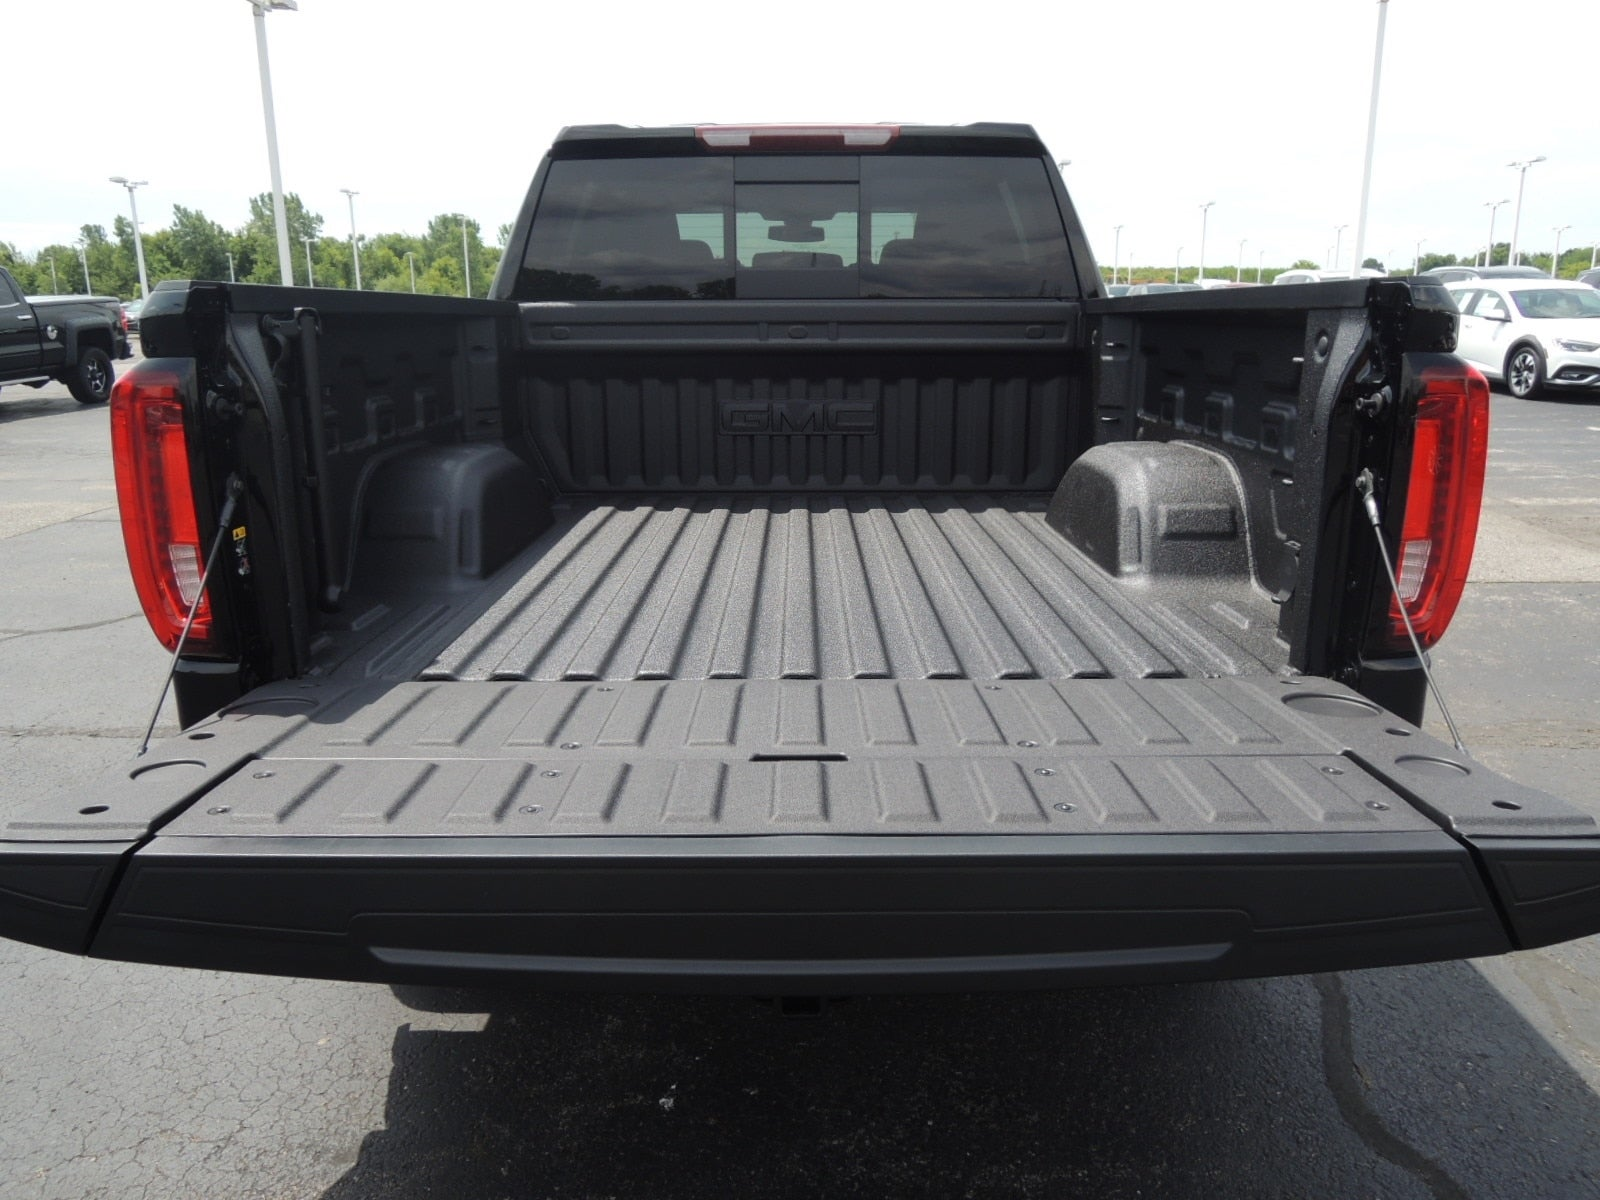 2021 GMC Sierra 1500 Crew Cab 4x4, Pickup #MT11X99 - photo 3